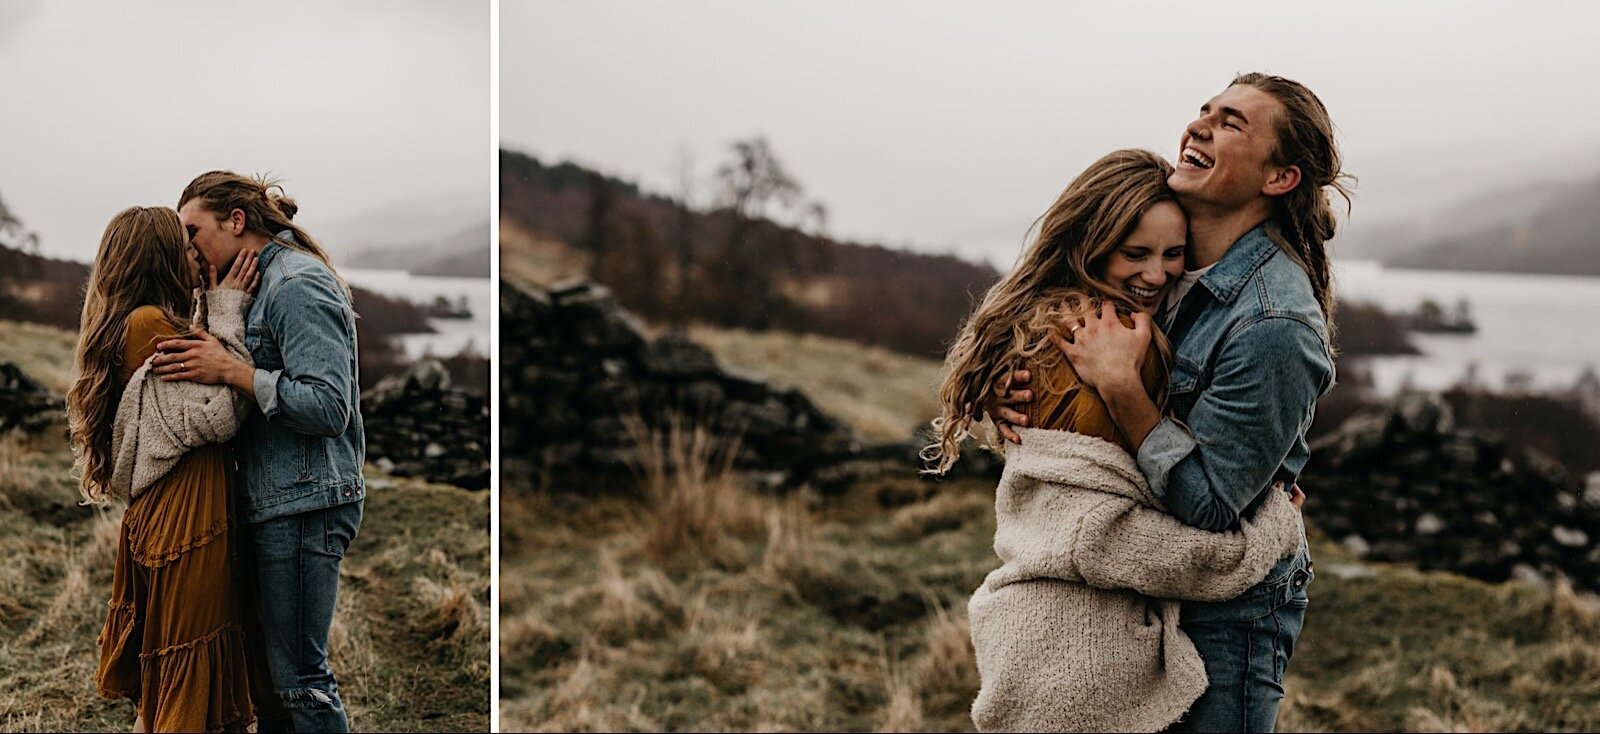 25_scotland_couple_shoot_lety_photography (28 von 40)_scotland_couple_shoot_lety_photography (25 von 40).jpg